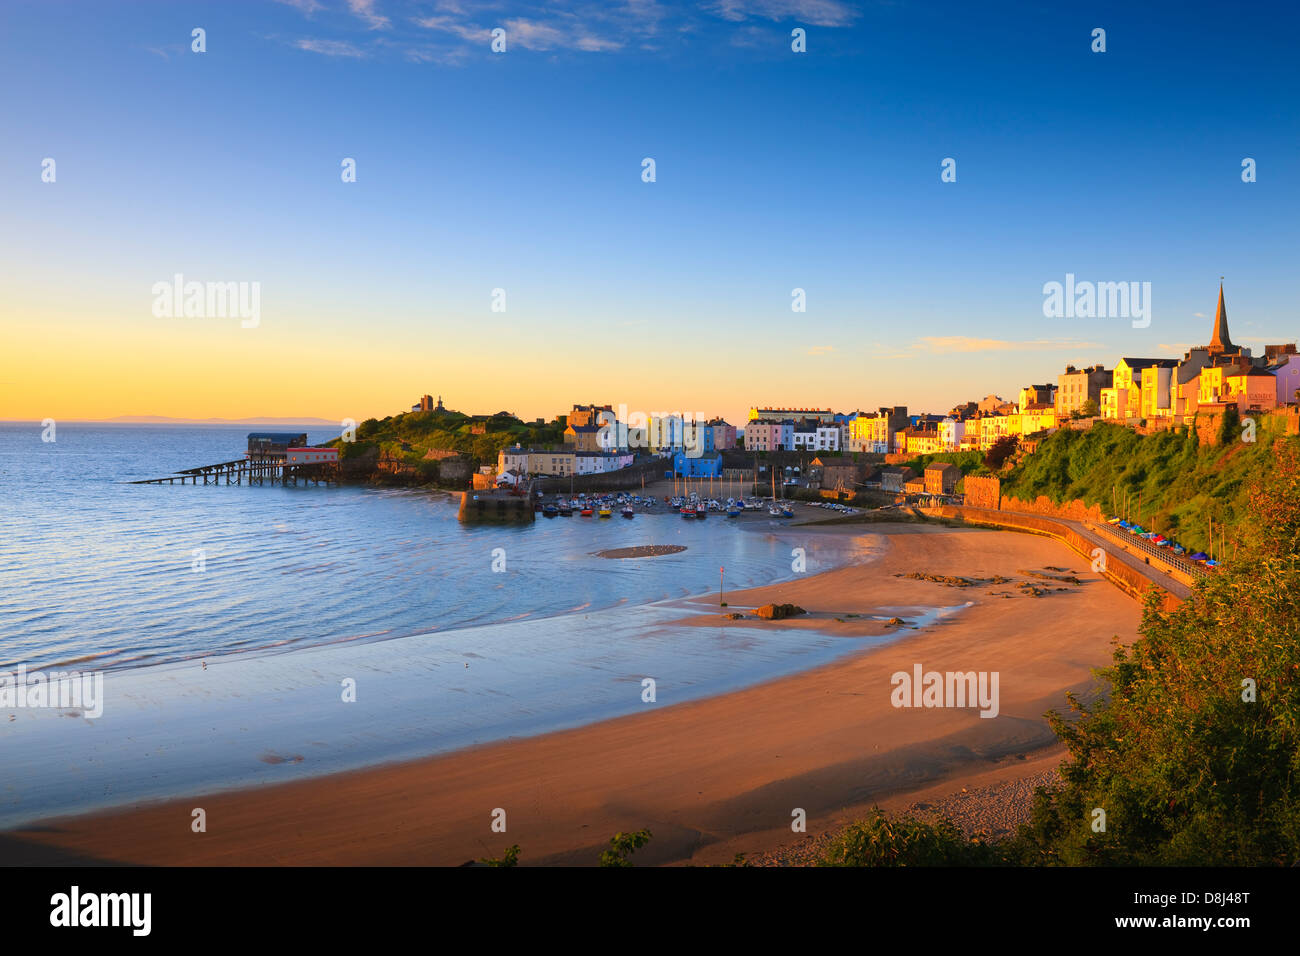 Tenby Harbour Tenby Pembrokeshire Wales - Stock Image